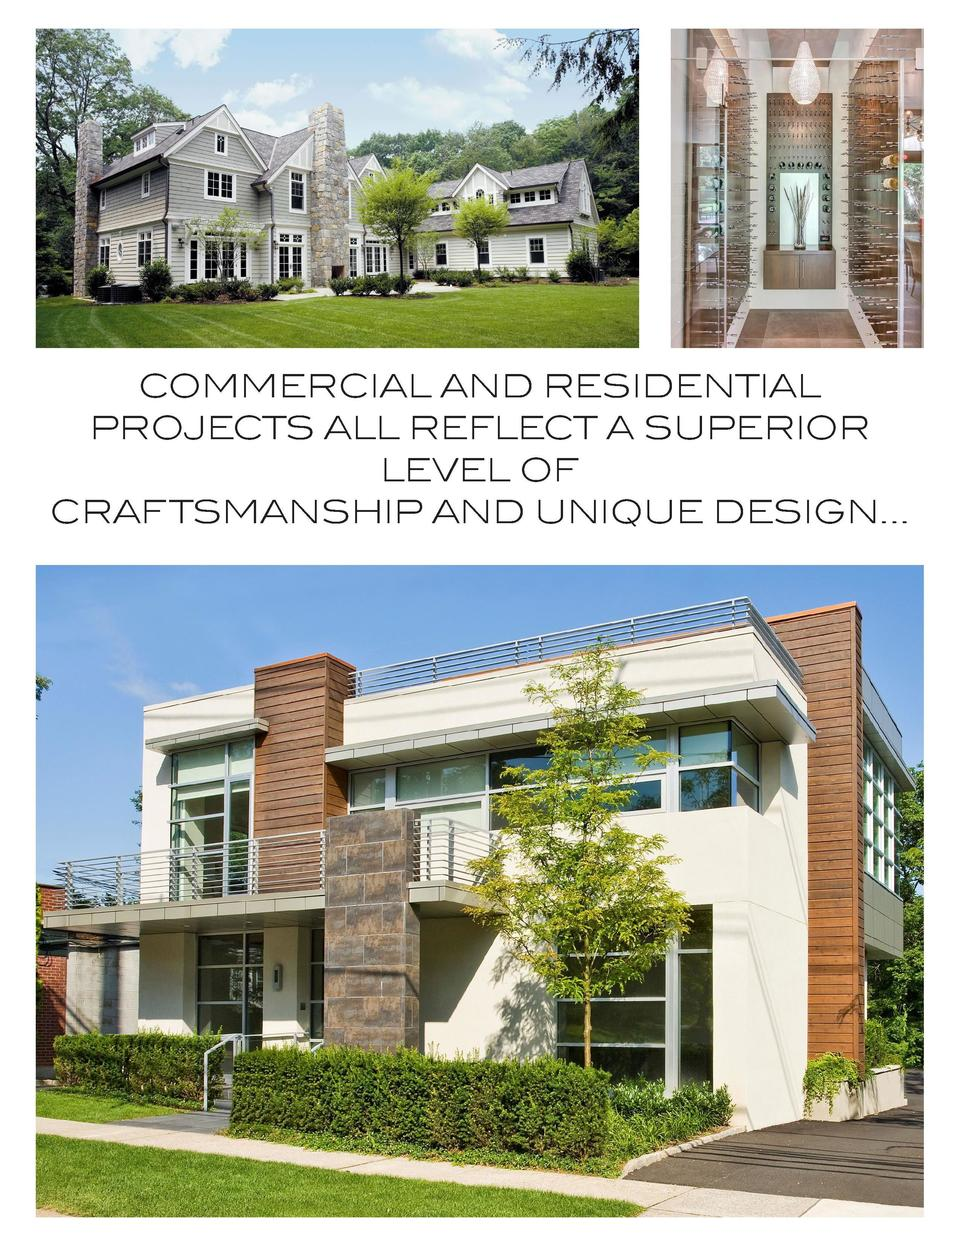 COMMERCIAL AND RESIDENTIAL PROJECTS ALL REFLECT A SUPERIOR LEVEL OF CRAFTSMANSHIP AND UNIQUE DESIGN... In the case of the ...